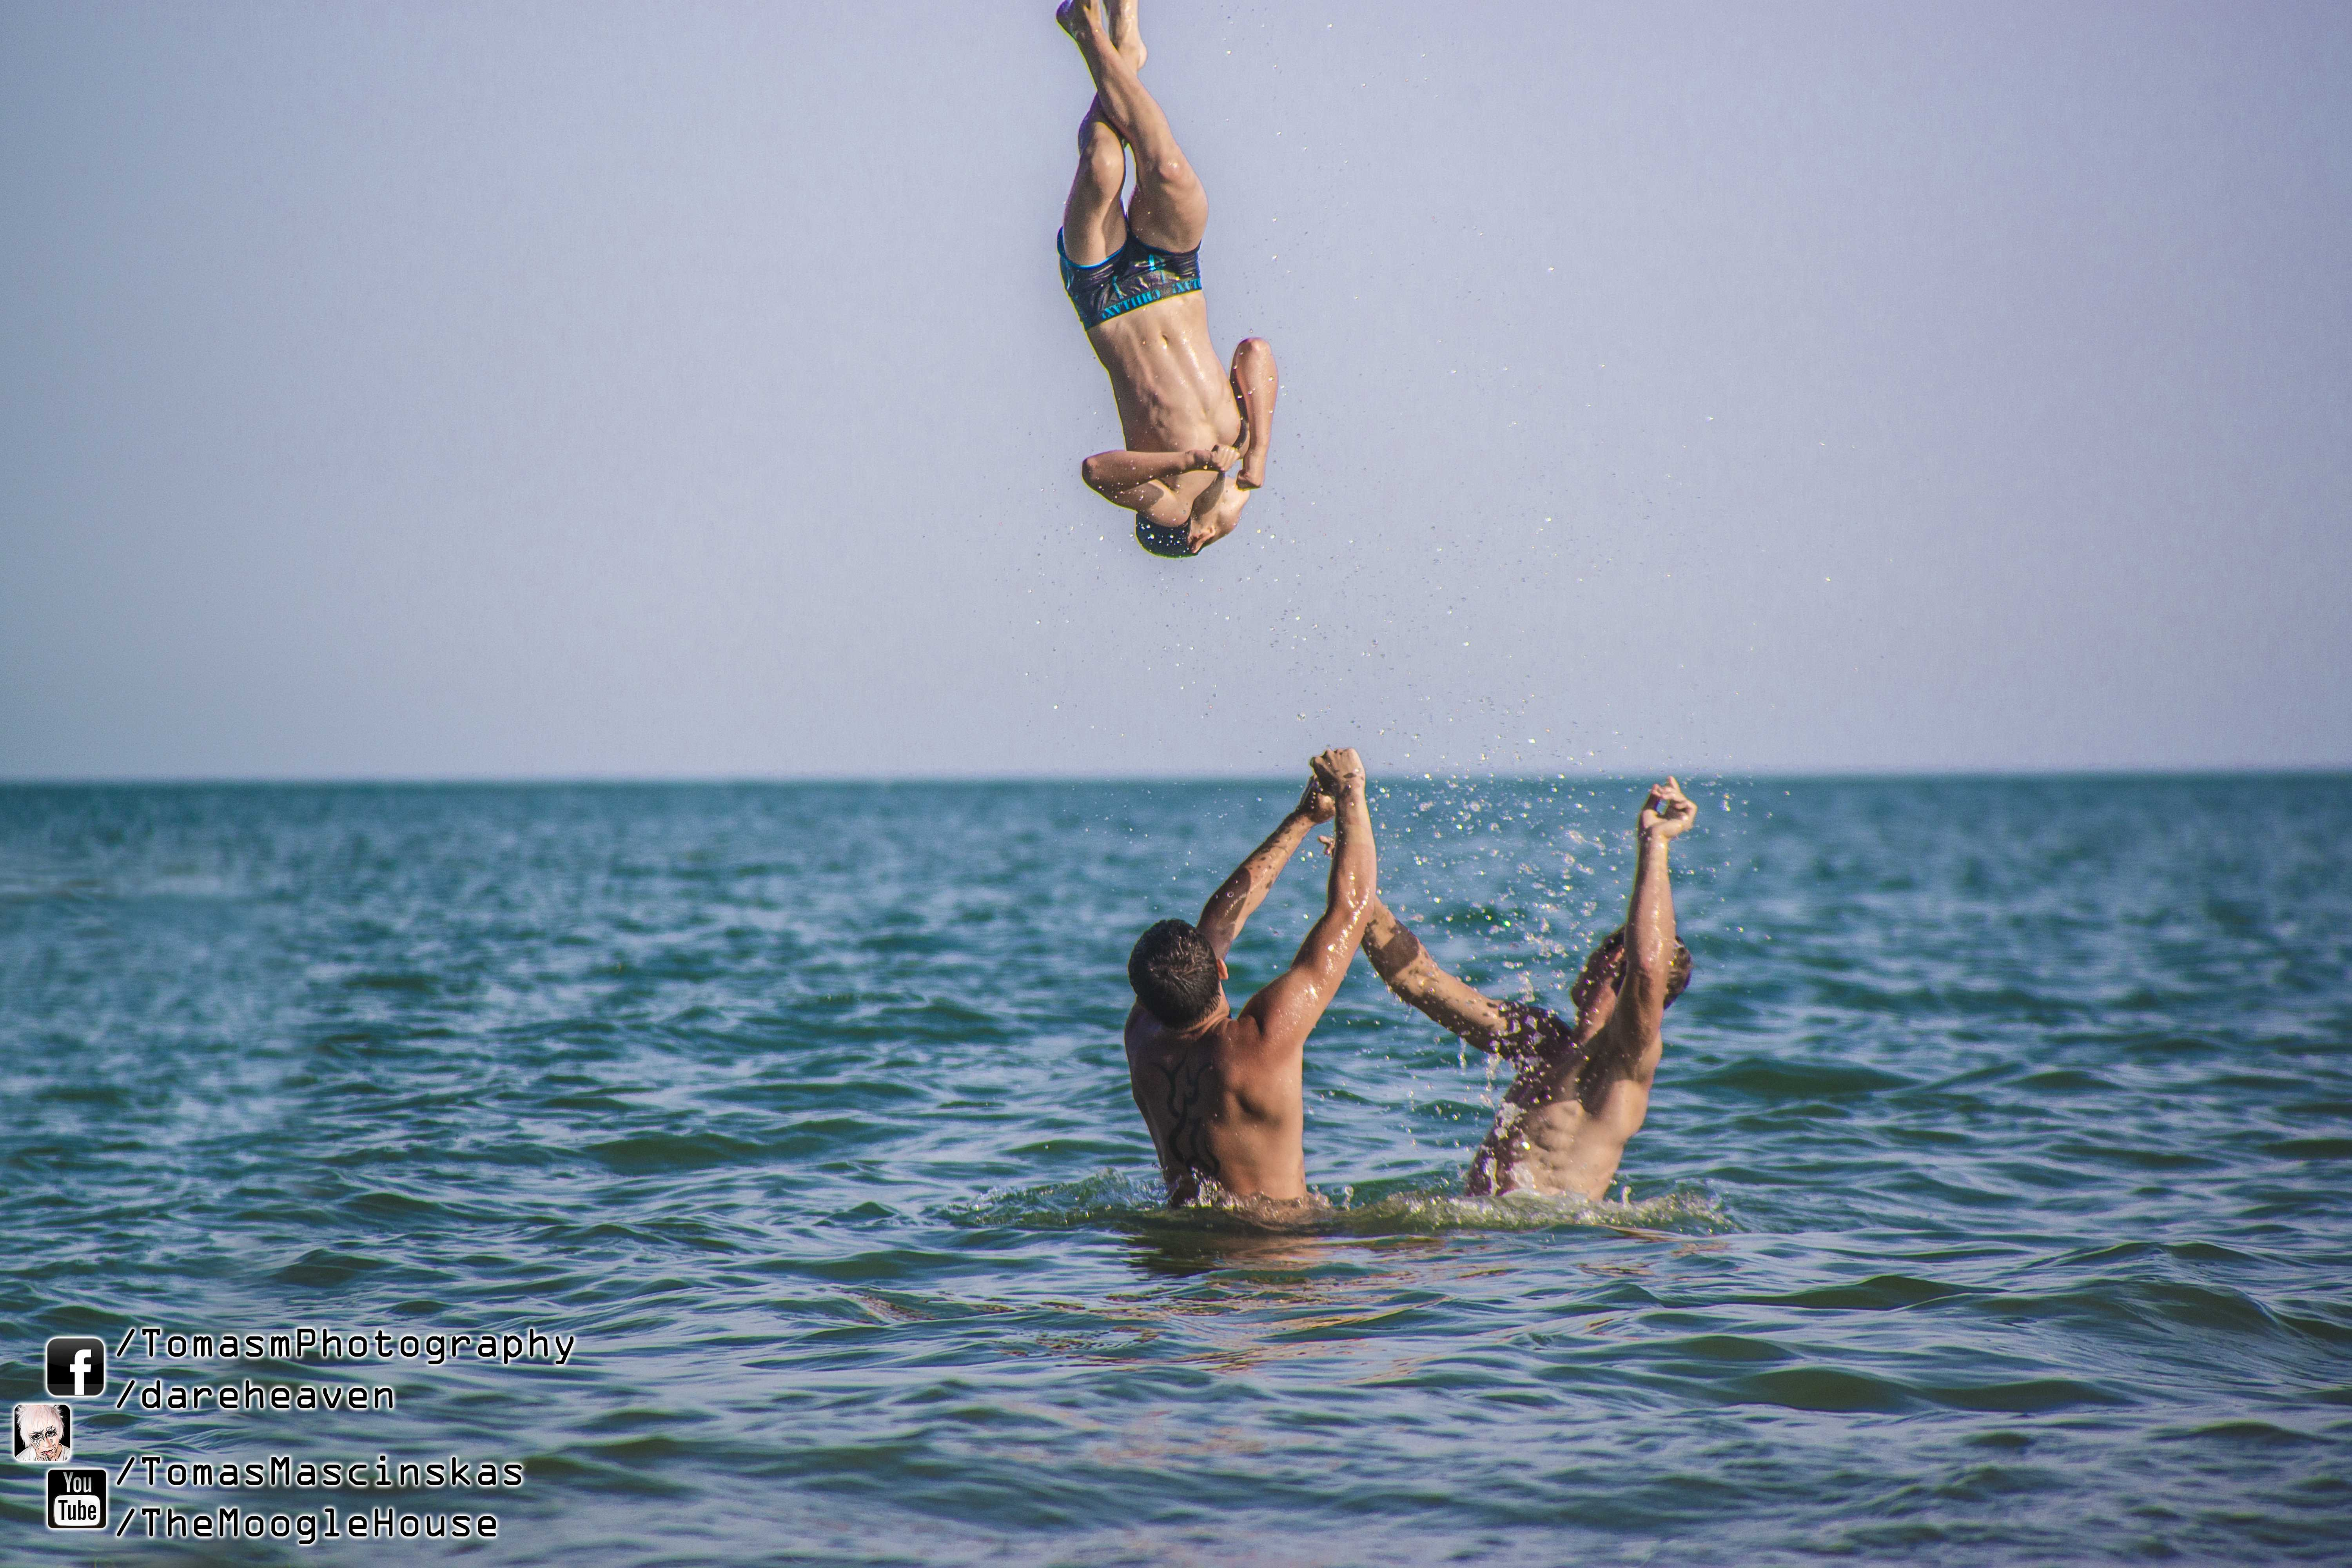 water flipping 2013.08.26  by Tomas Mascinskas by atmp